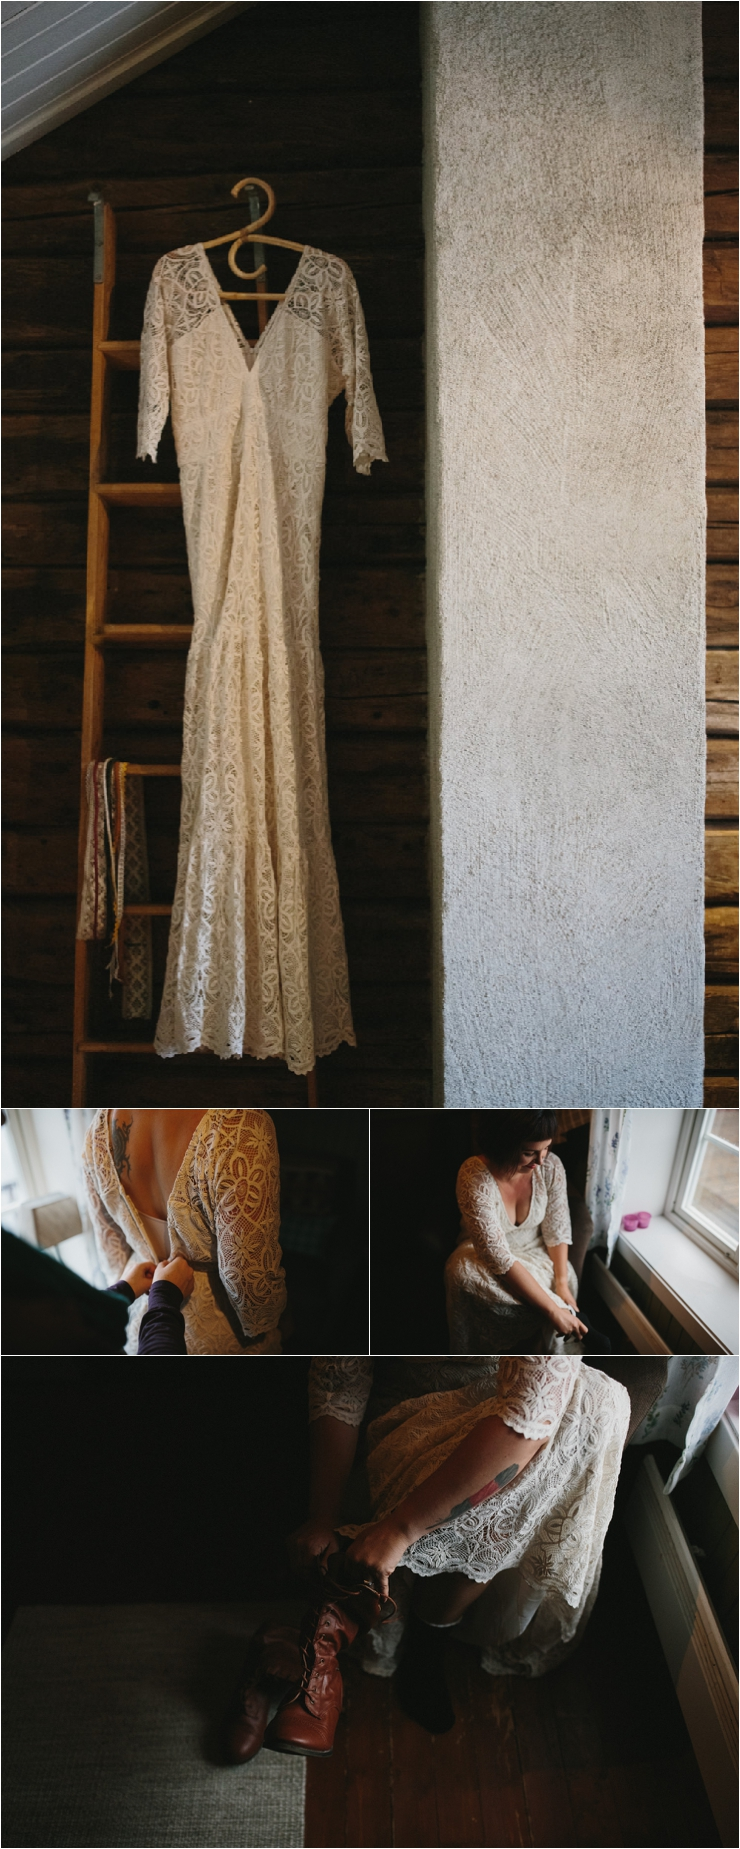 The wedding dress hangs in the cabin and Max gets dressed for her elopement in Lofoten Norway by Thomas Stewart